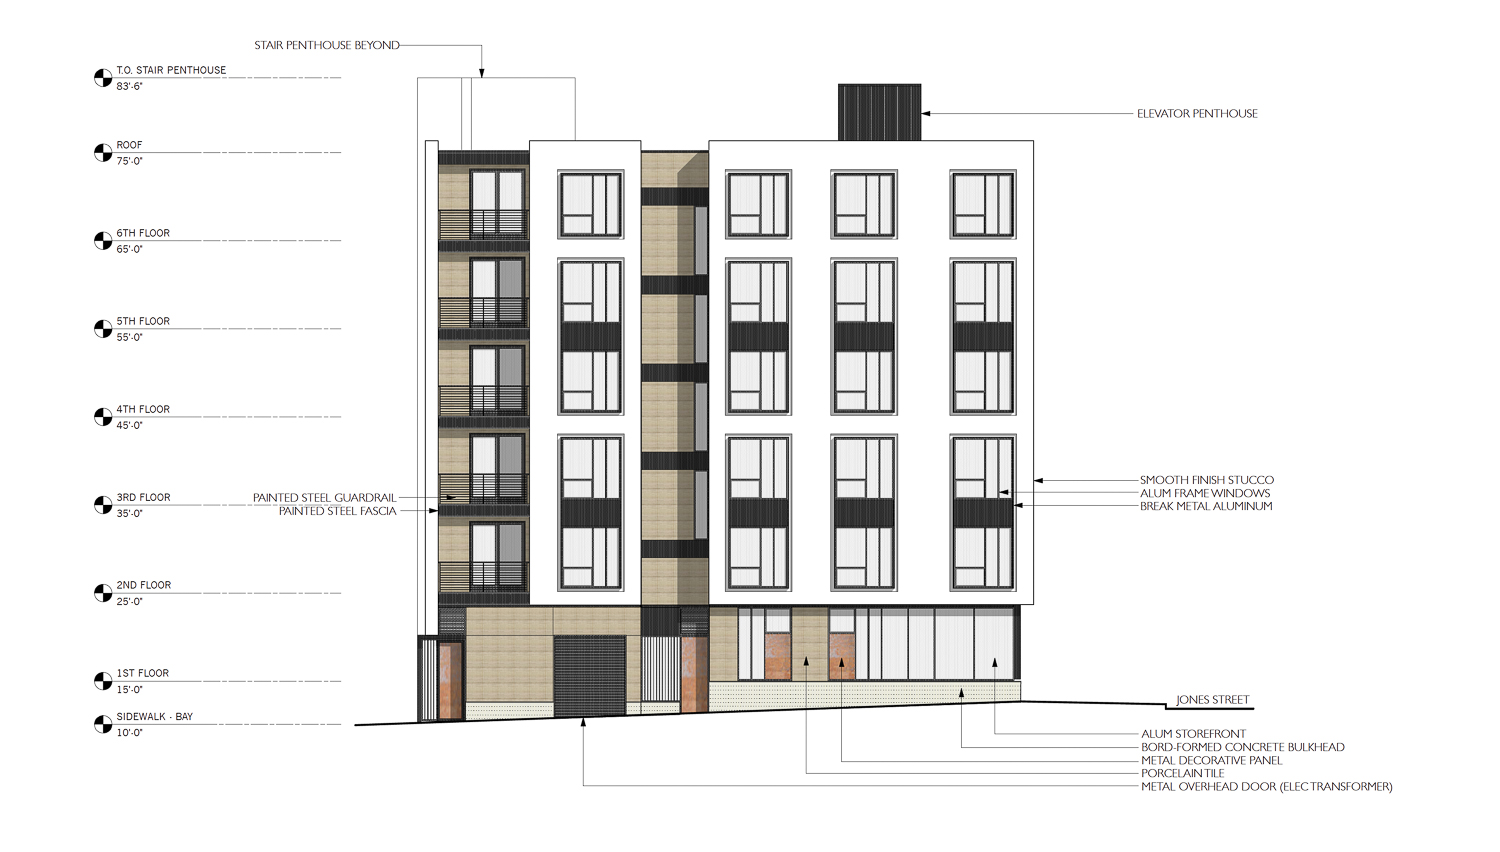 1196 Columbus Avenue vertical section, illustration by Elevation Architects